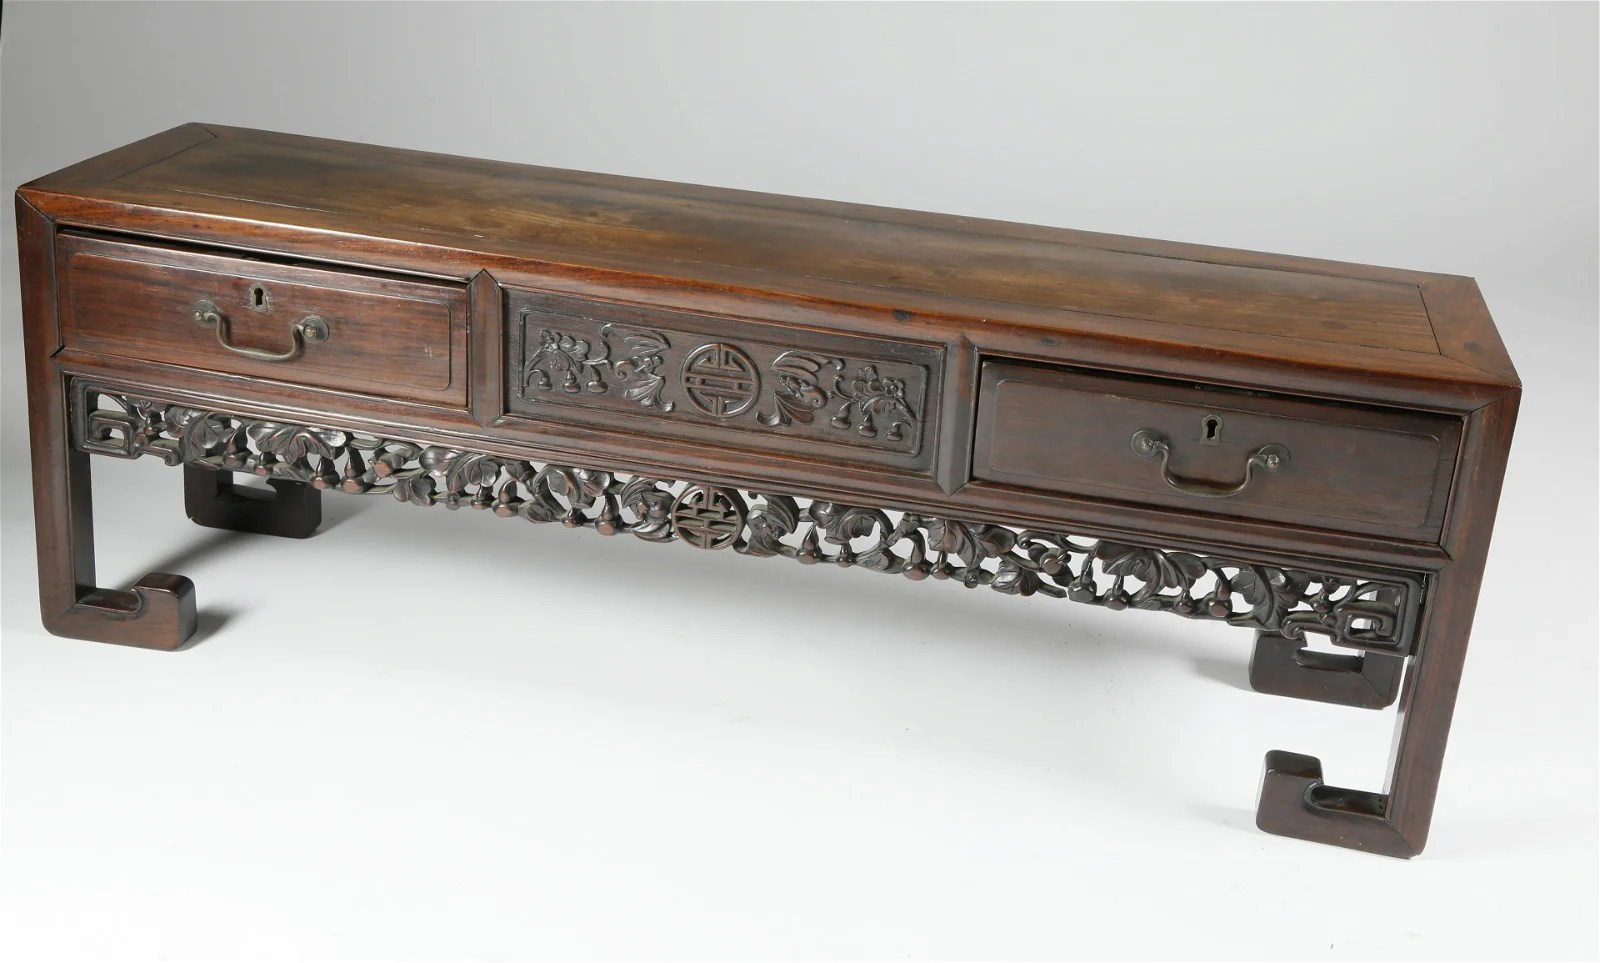 Chinese Teak Wood Low Table, circa 1850